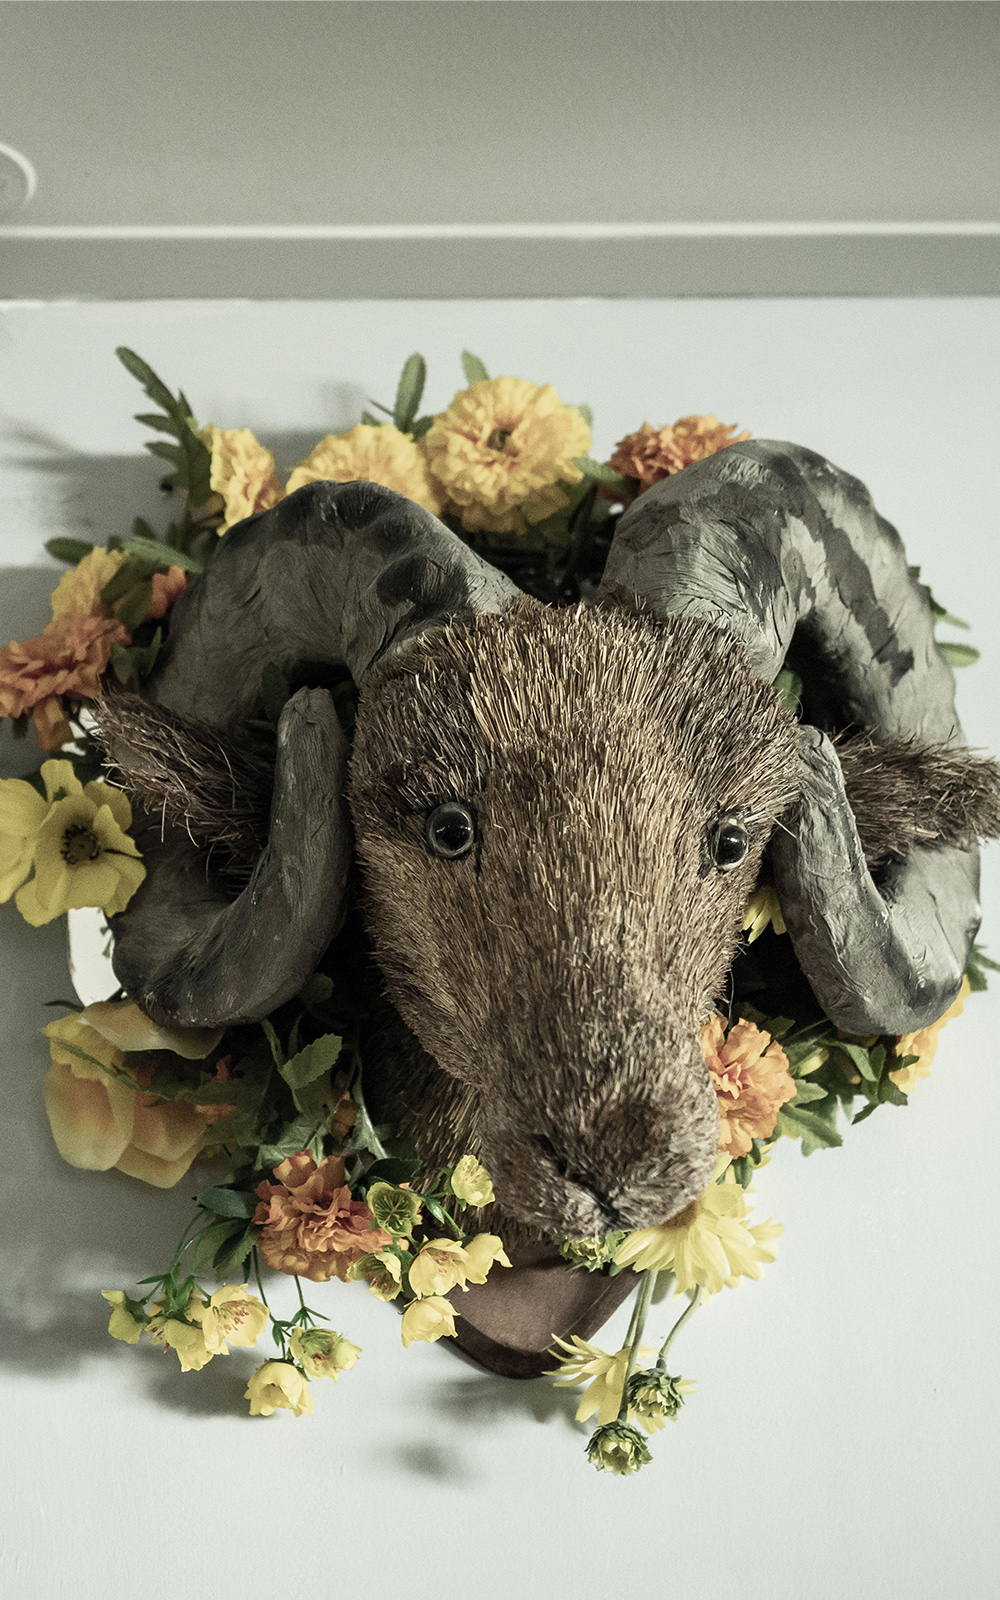 A head of a ram surrounded by flowers mounted on a wall